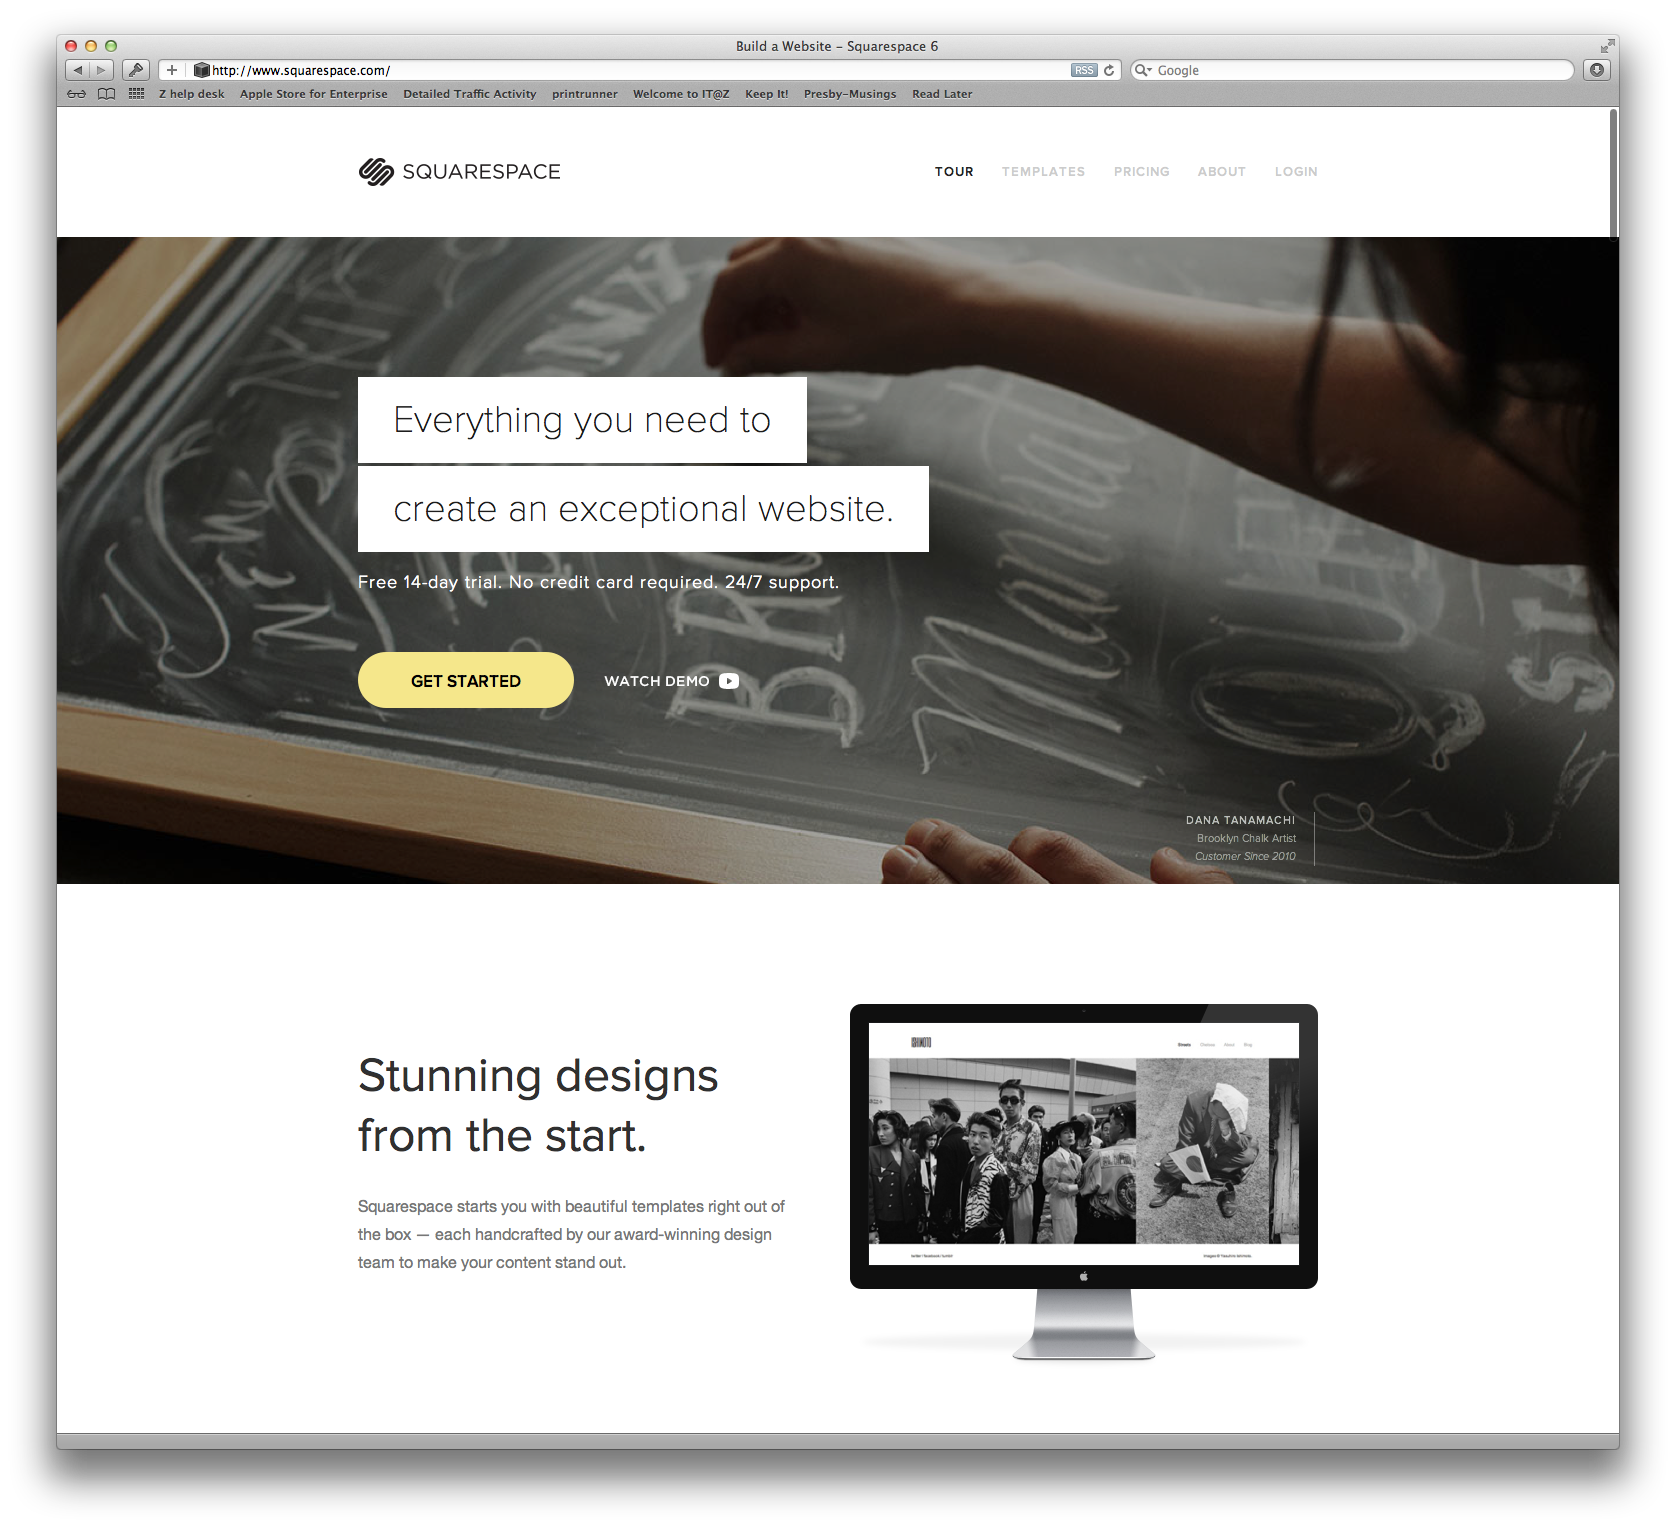 The new Squarespace